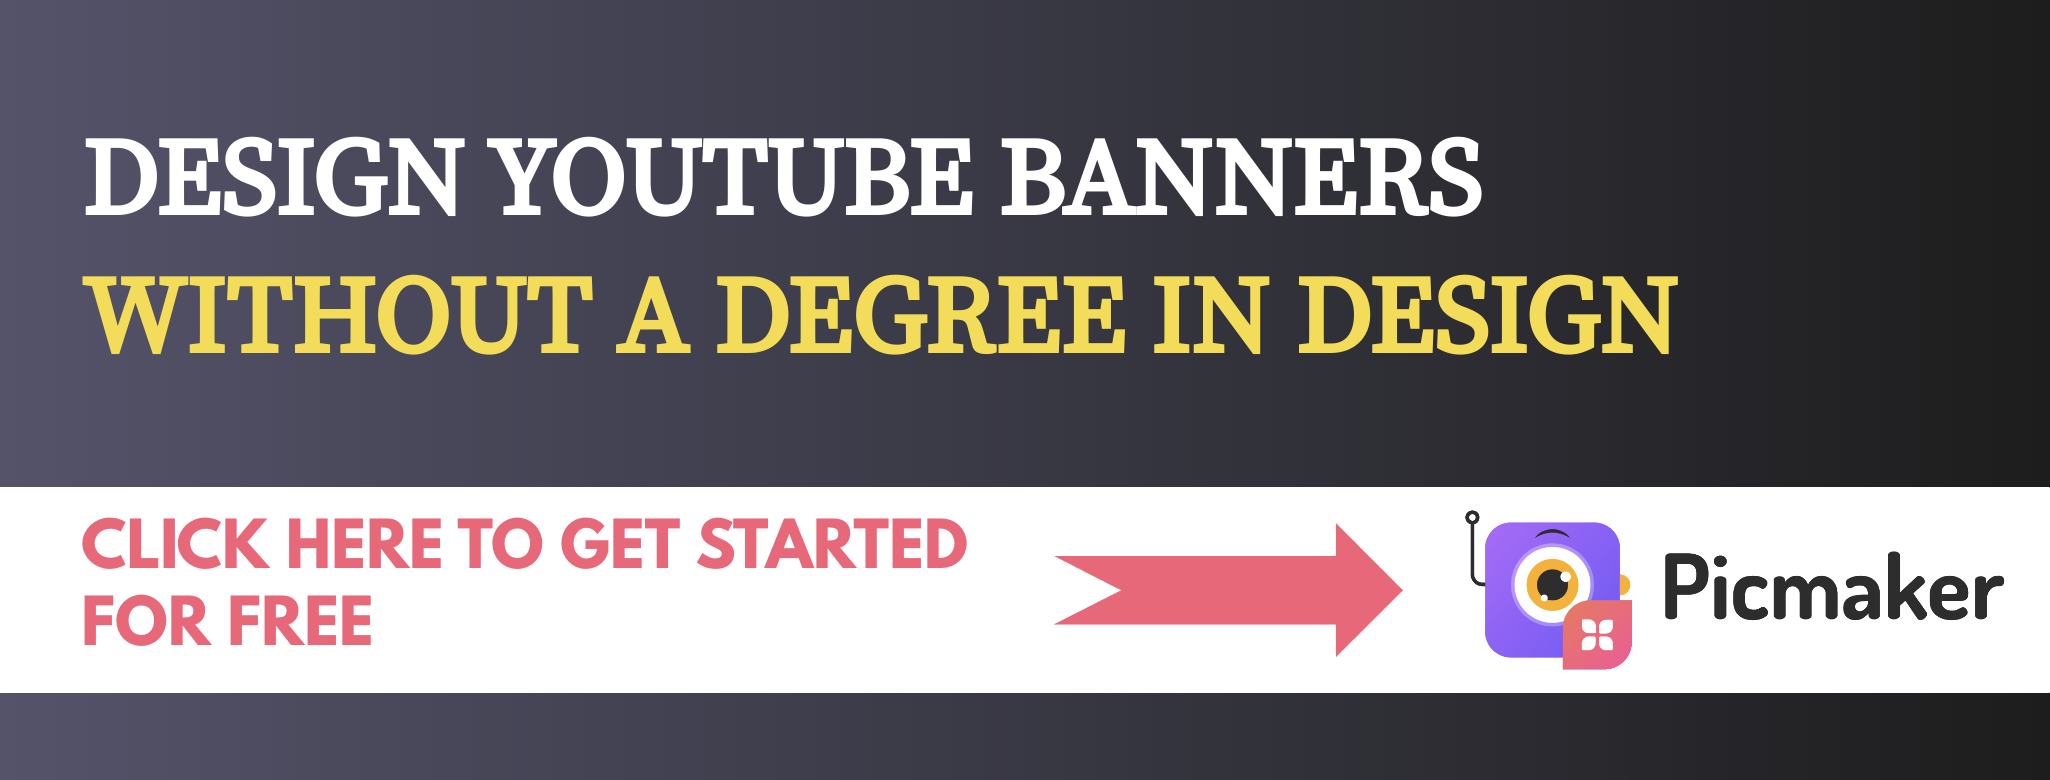 Picmaker youtube banner lead capture banner 3